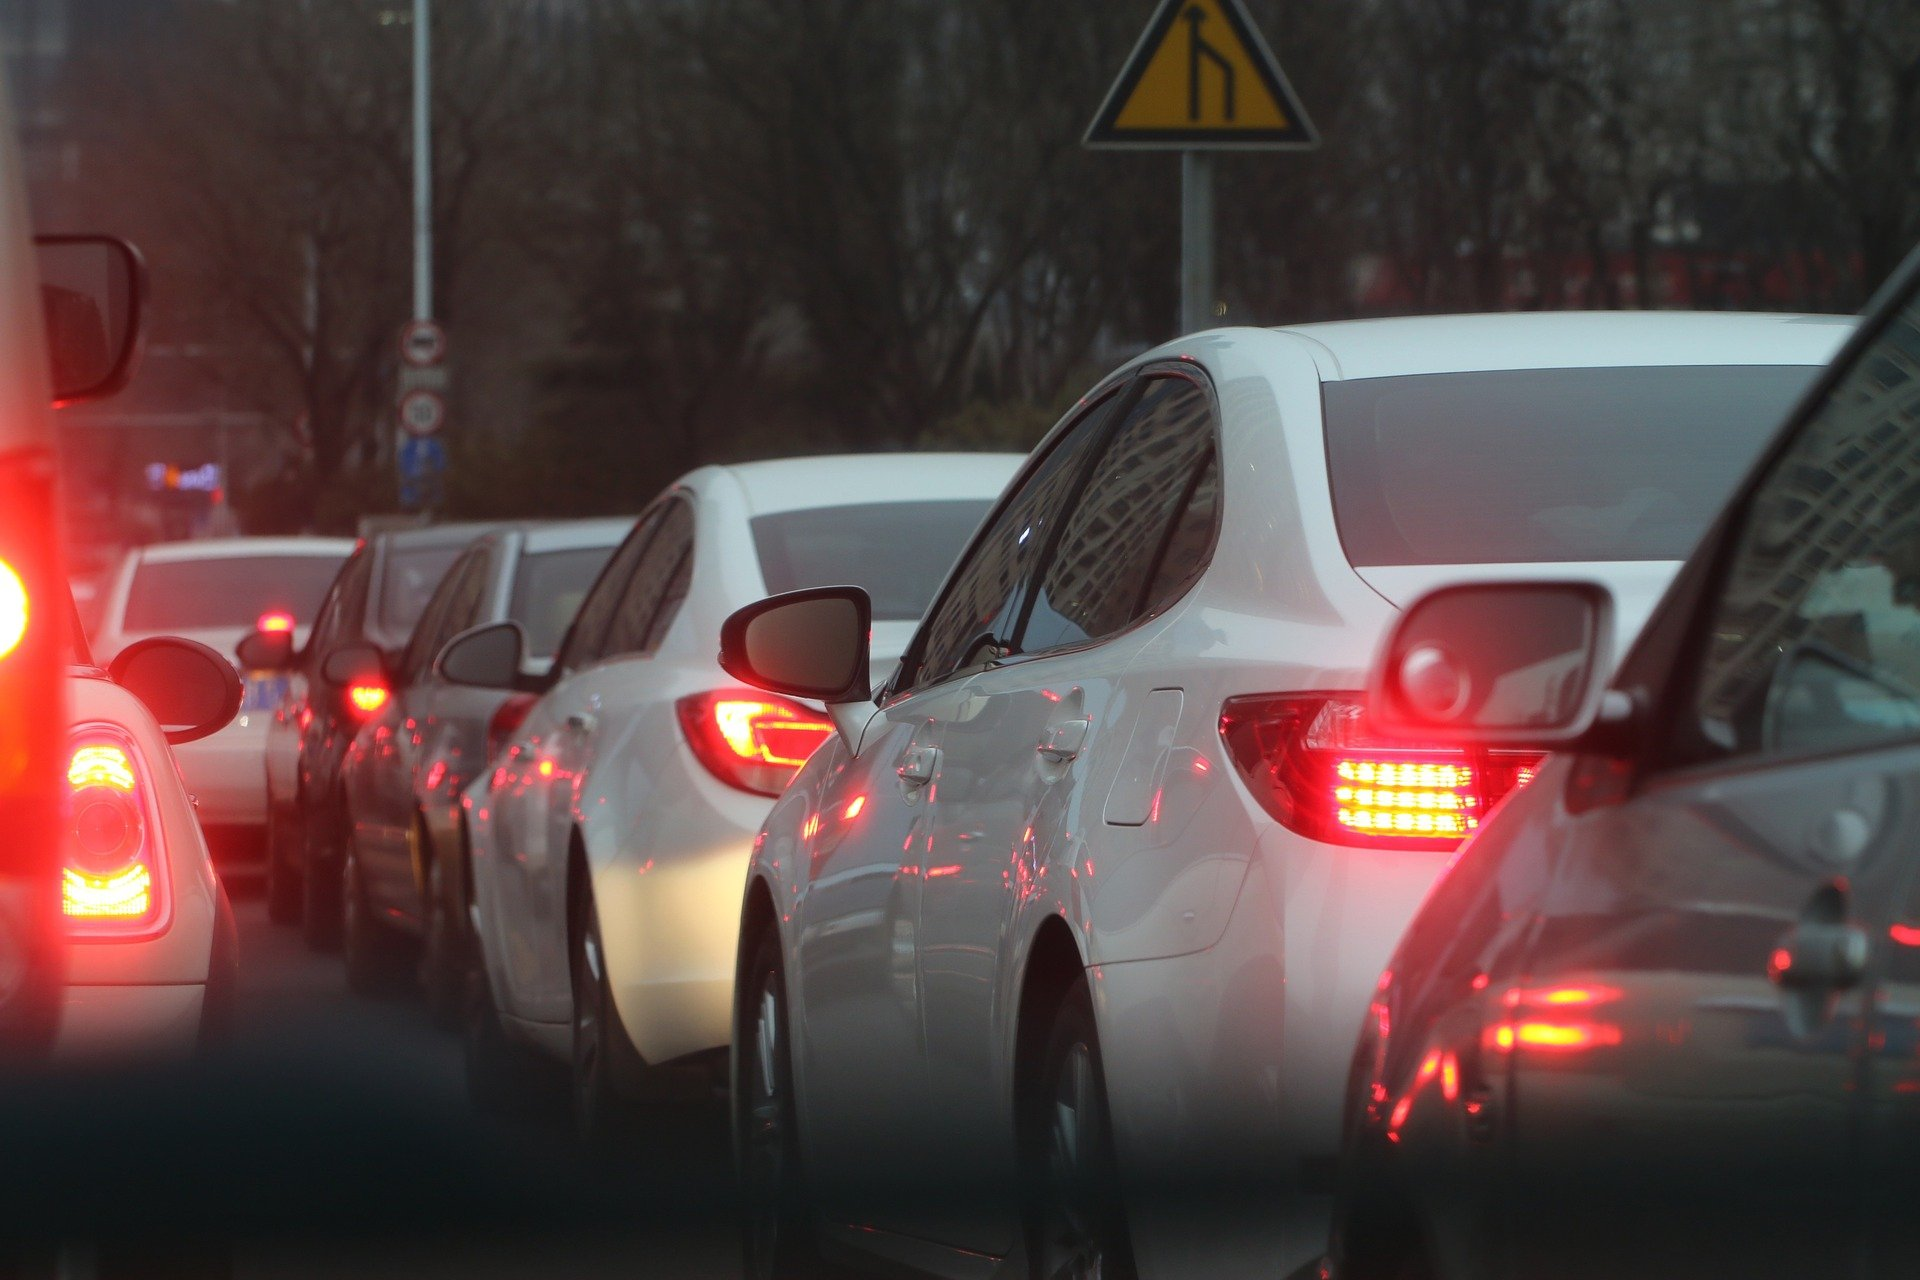 Driving Traffic Jams Causes Stress And Massage Therapy